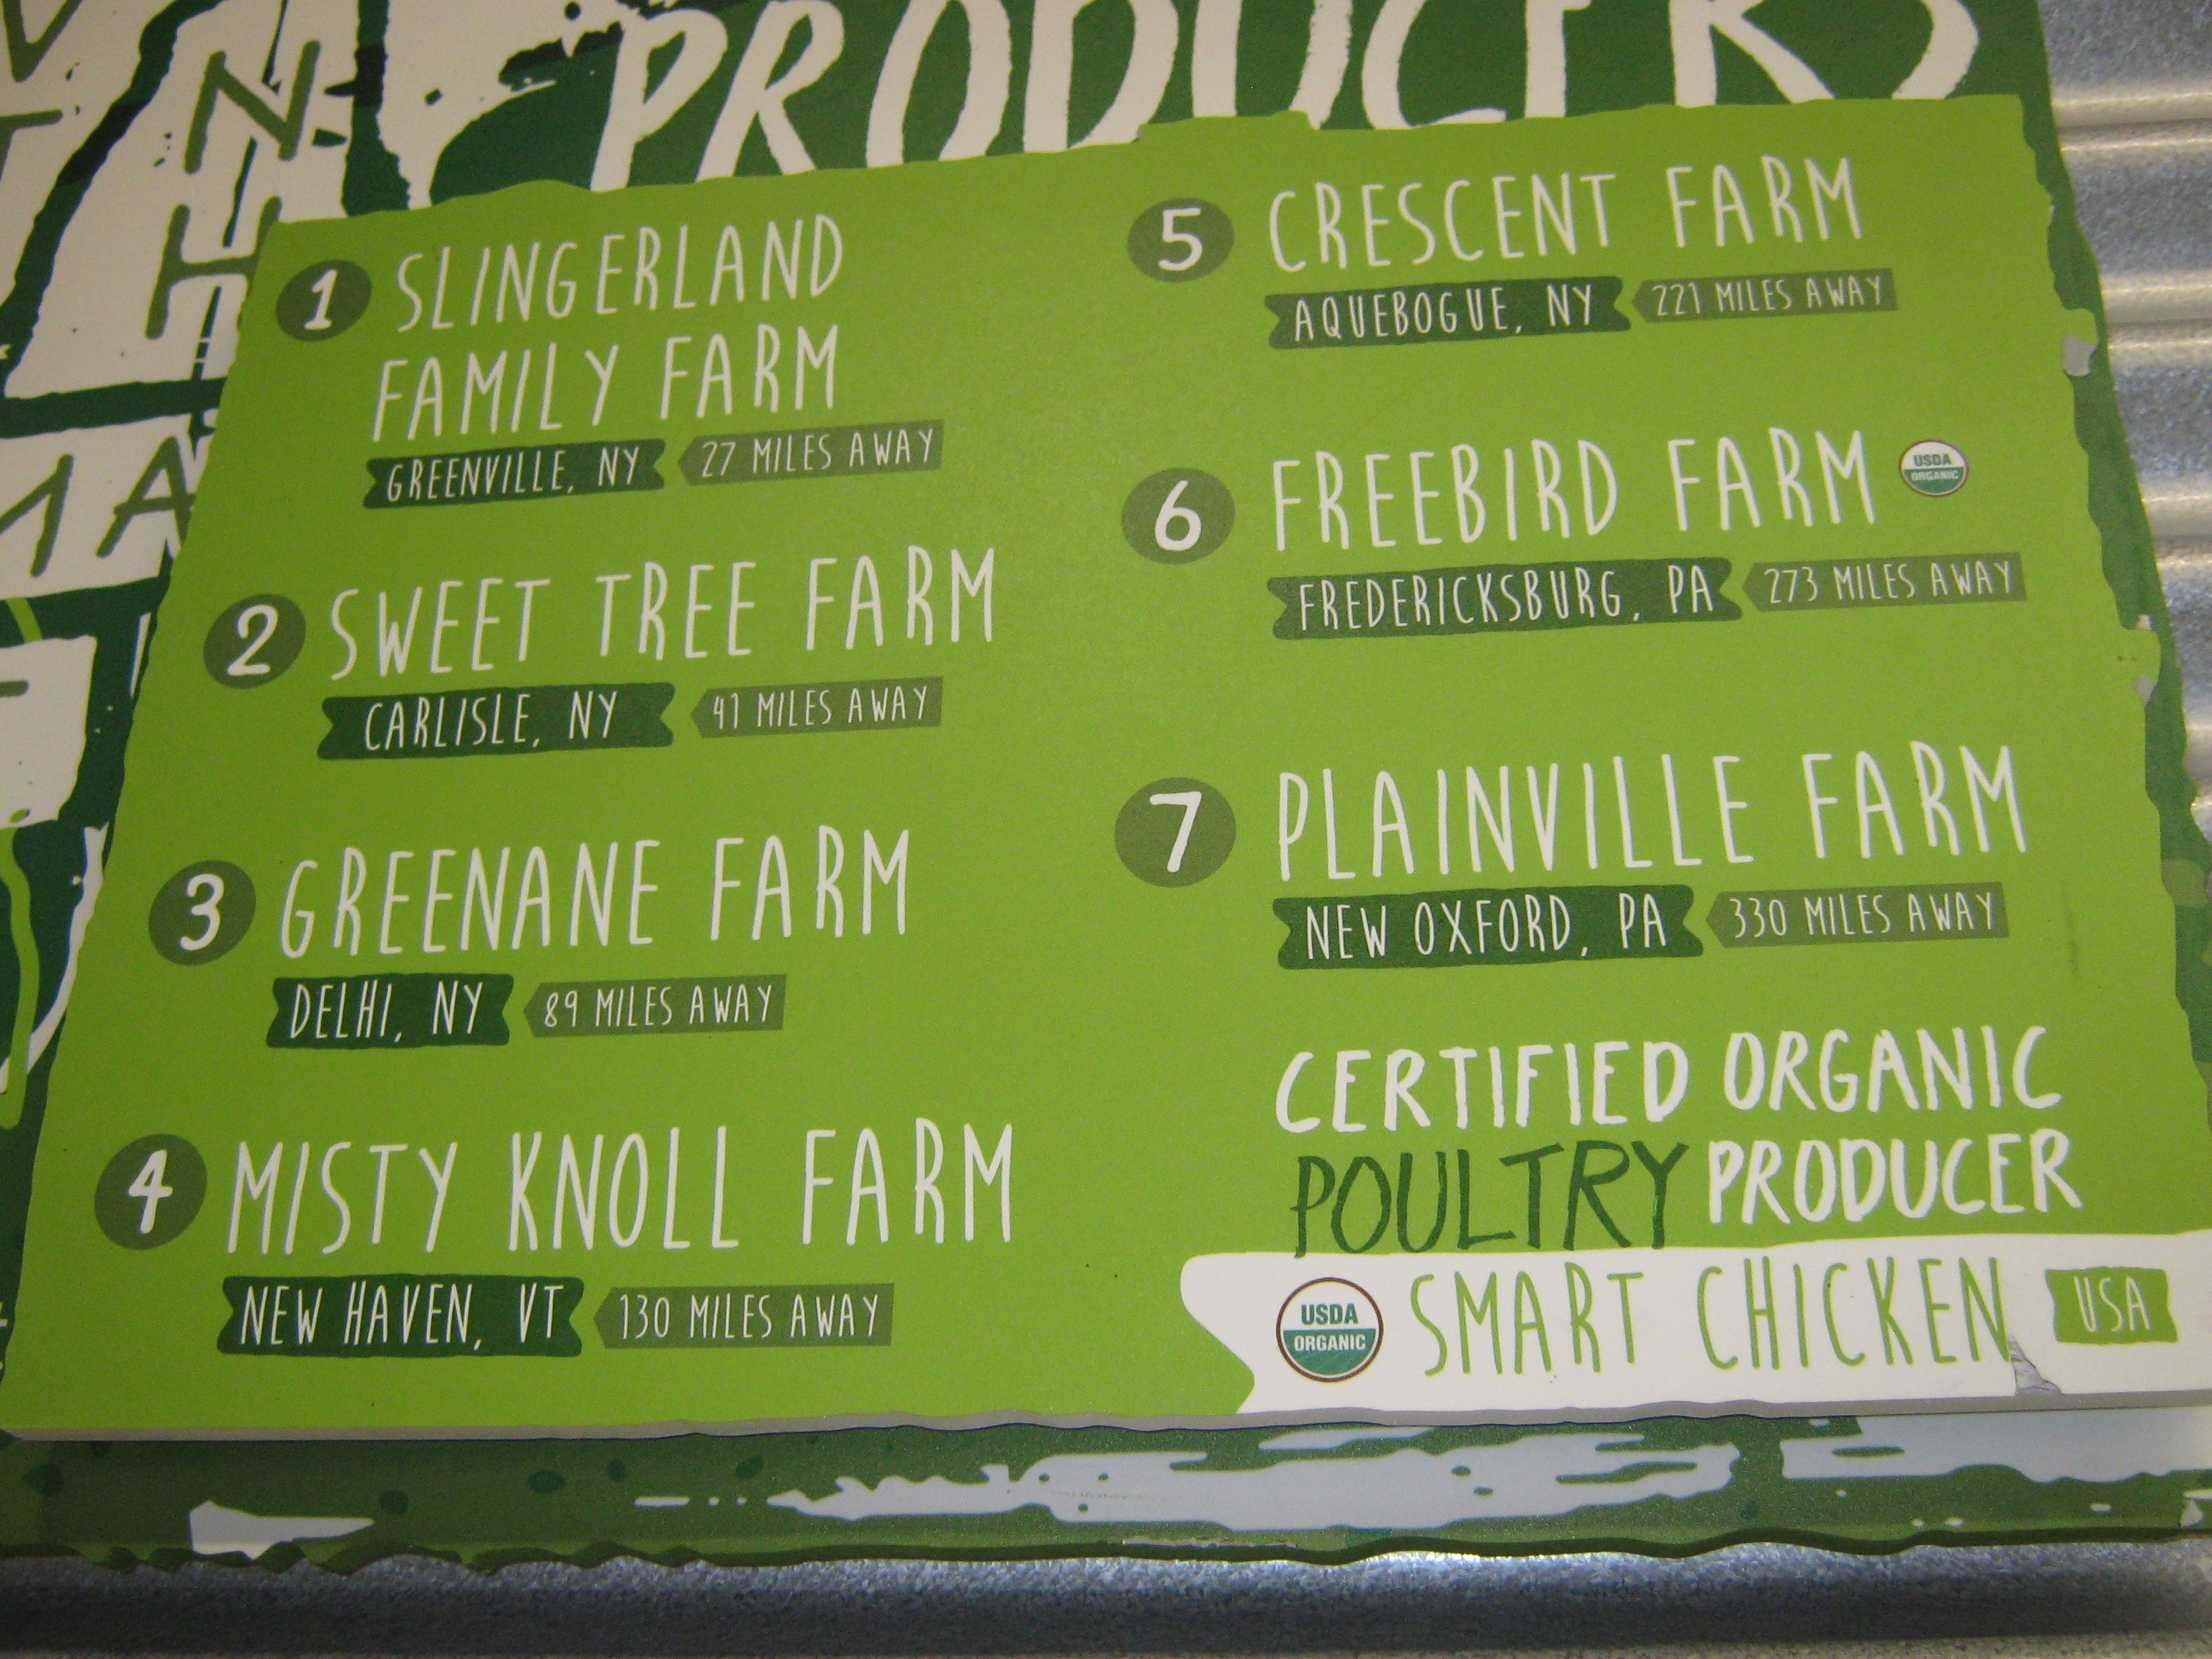 Smart Chicken's Industrial Scale Poultry Operations Muddies The Meaning of Organic For Food Co-op Consumers